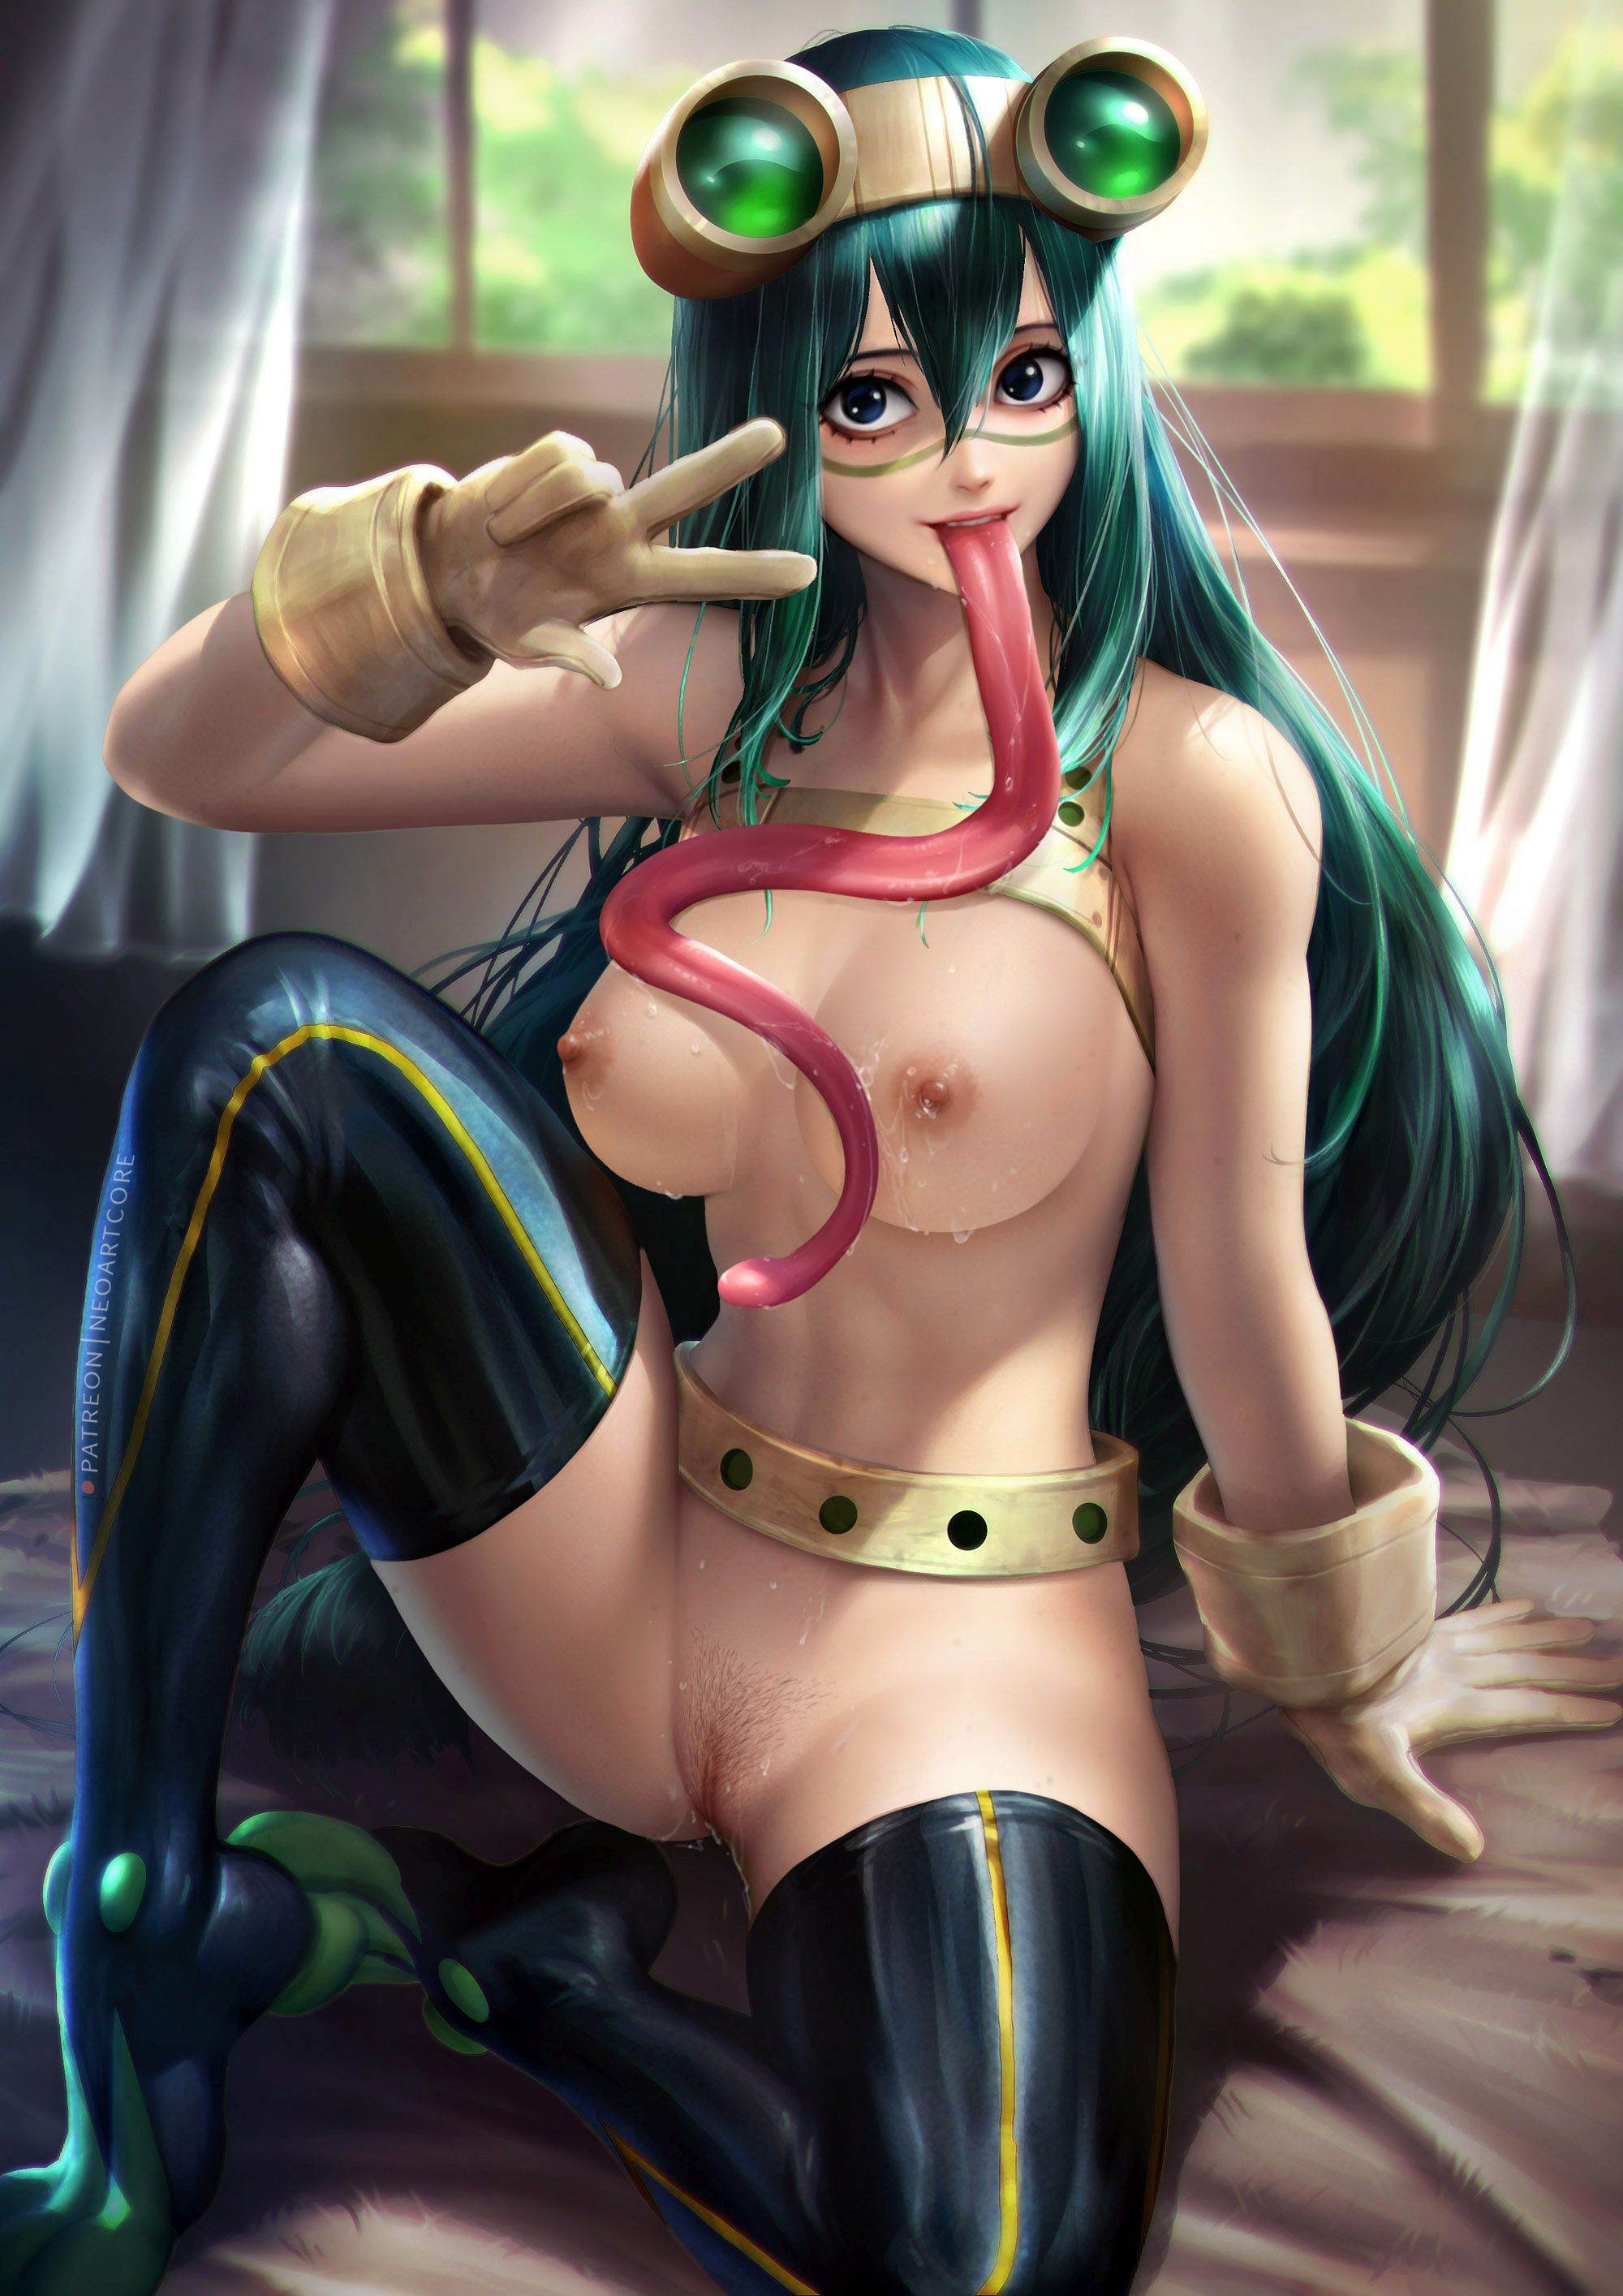 Even More Tsuyu Asui My Hero Academia Hentai